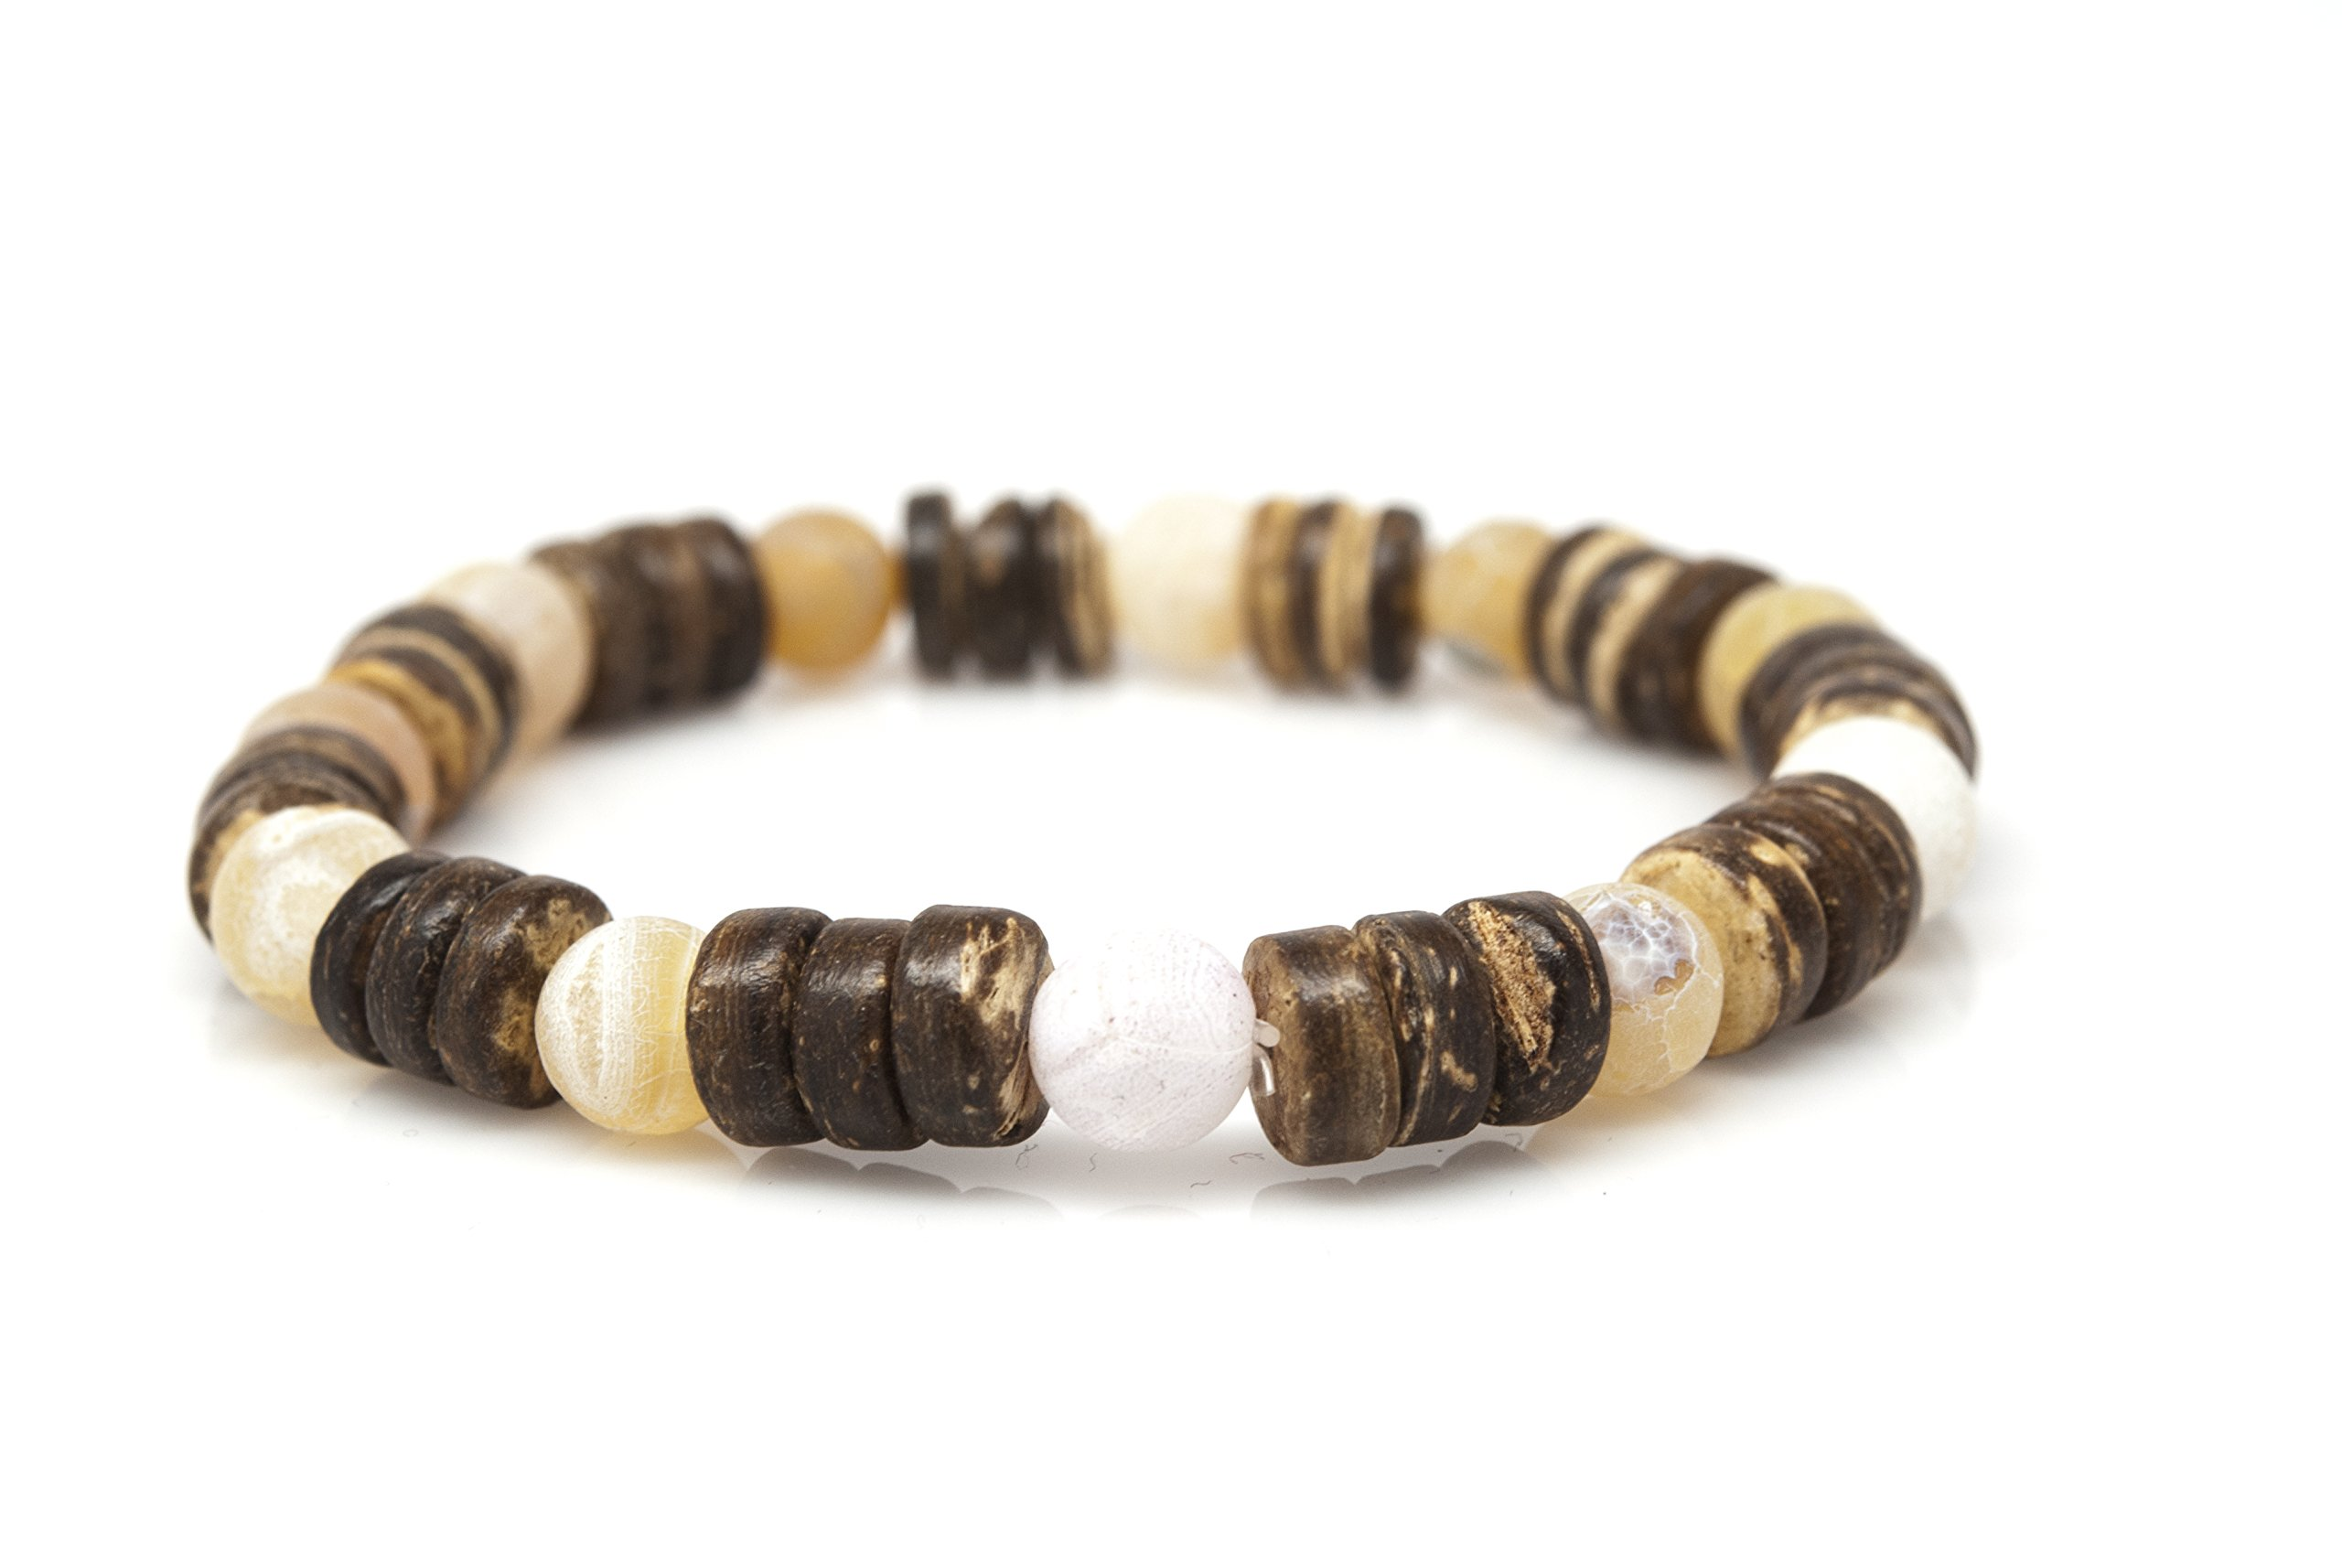 Orti Jewelry Wrist Beads Semiprecious Stone Bracelet - Real Coconut and Agate Gemstones - for Chakra Healing and Balancing, fits Men and Women 7 inch - Adds Boho Charm to Any Outfit, by